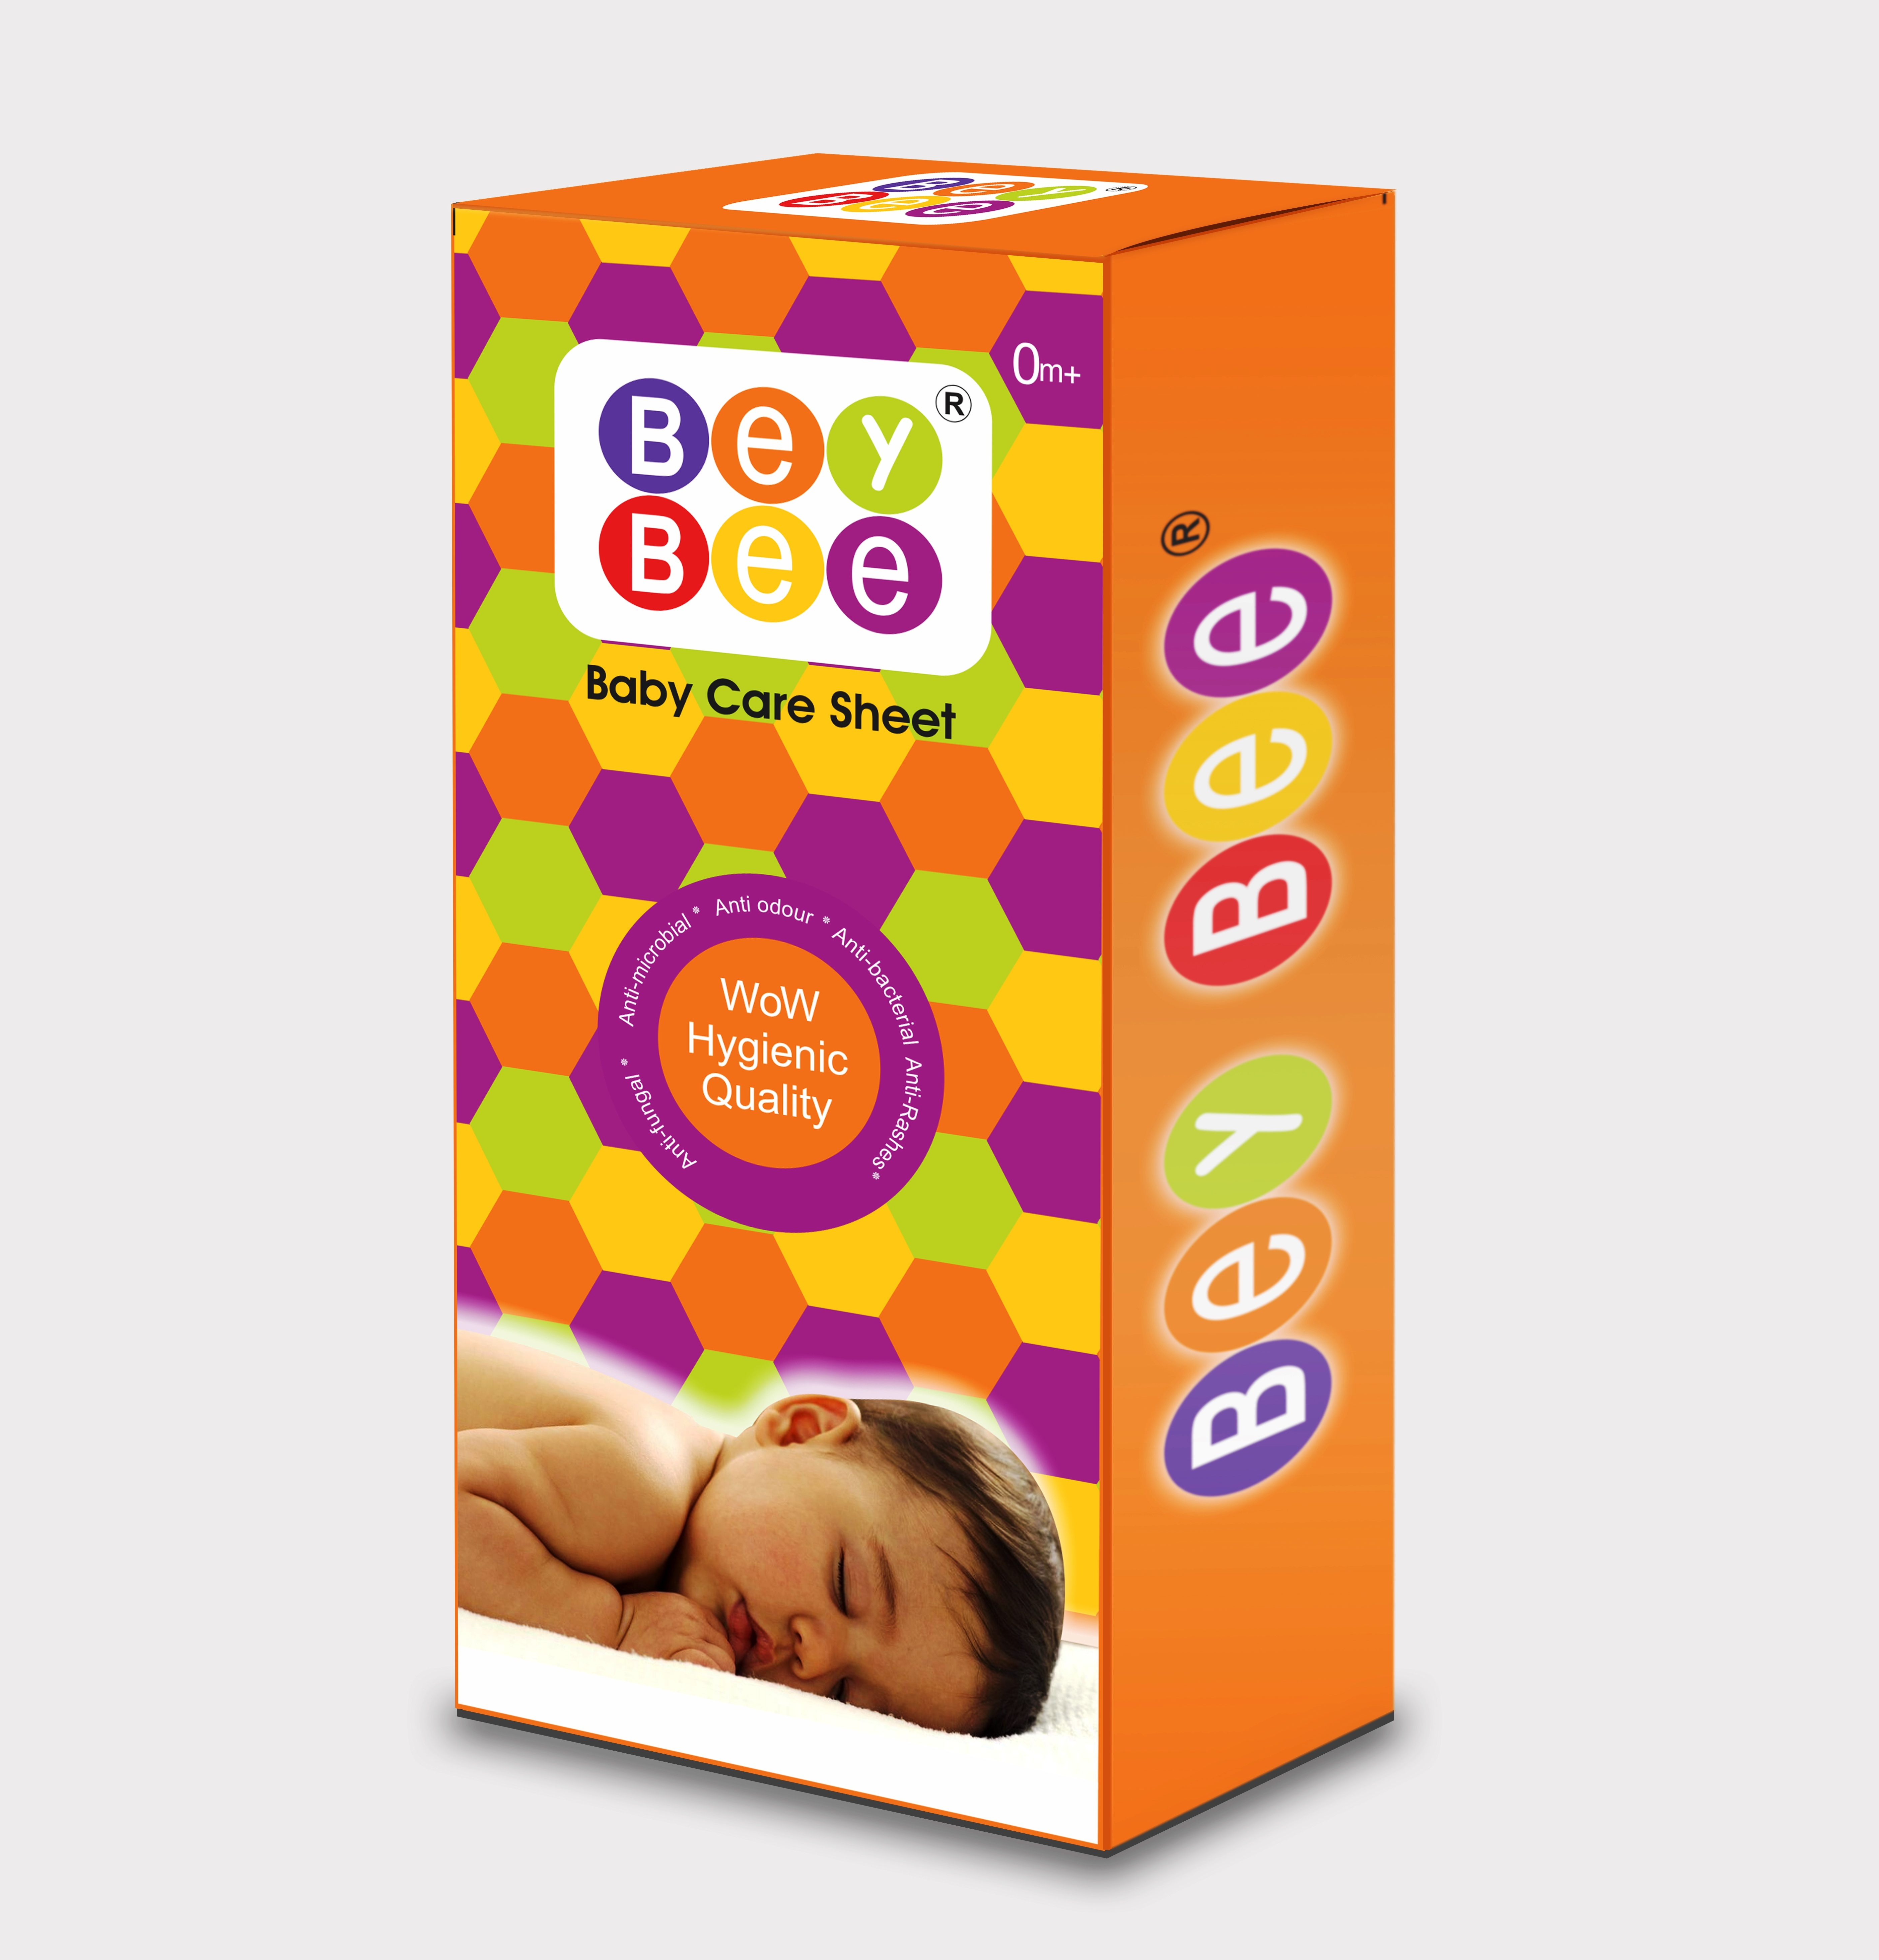 Baby Care: Are Johnson & Johnson baby products banned in